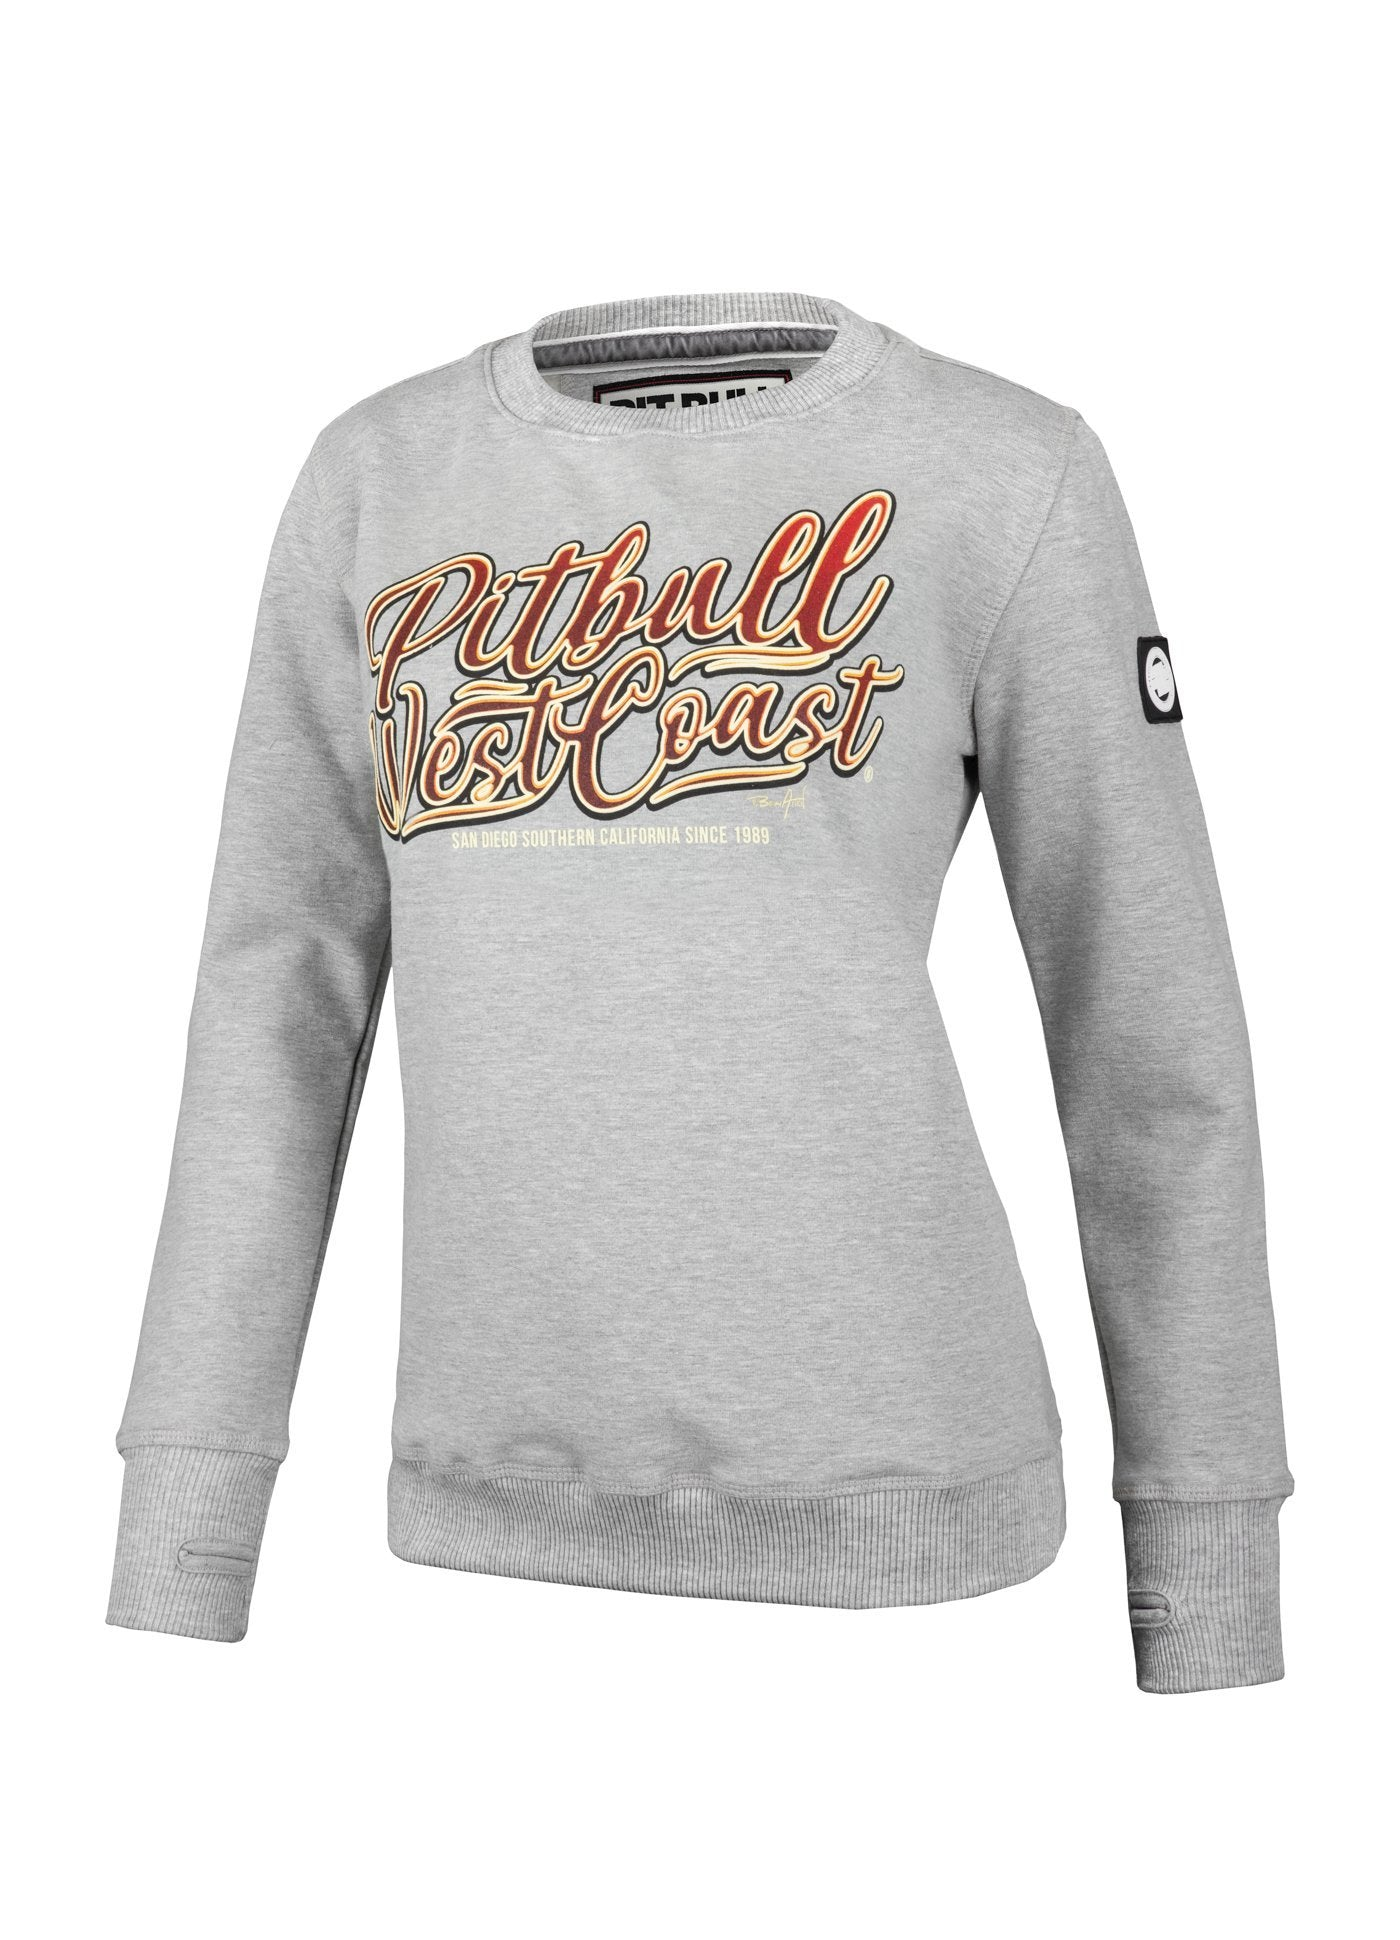 WOMEN CREWNECK City of Dogs GREY MLG - Pitbull West Coast U.S.A.